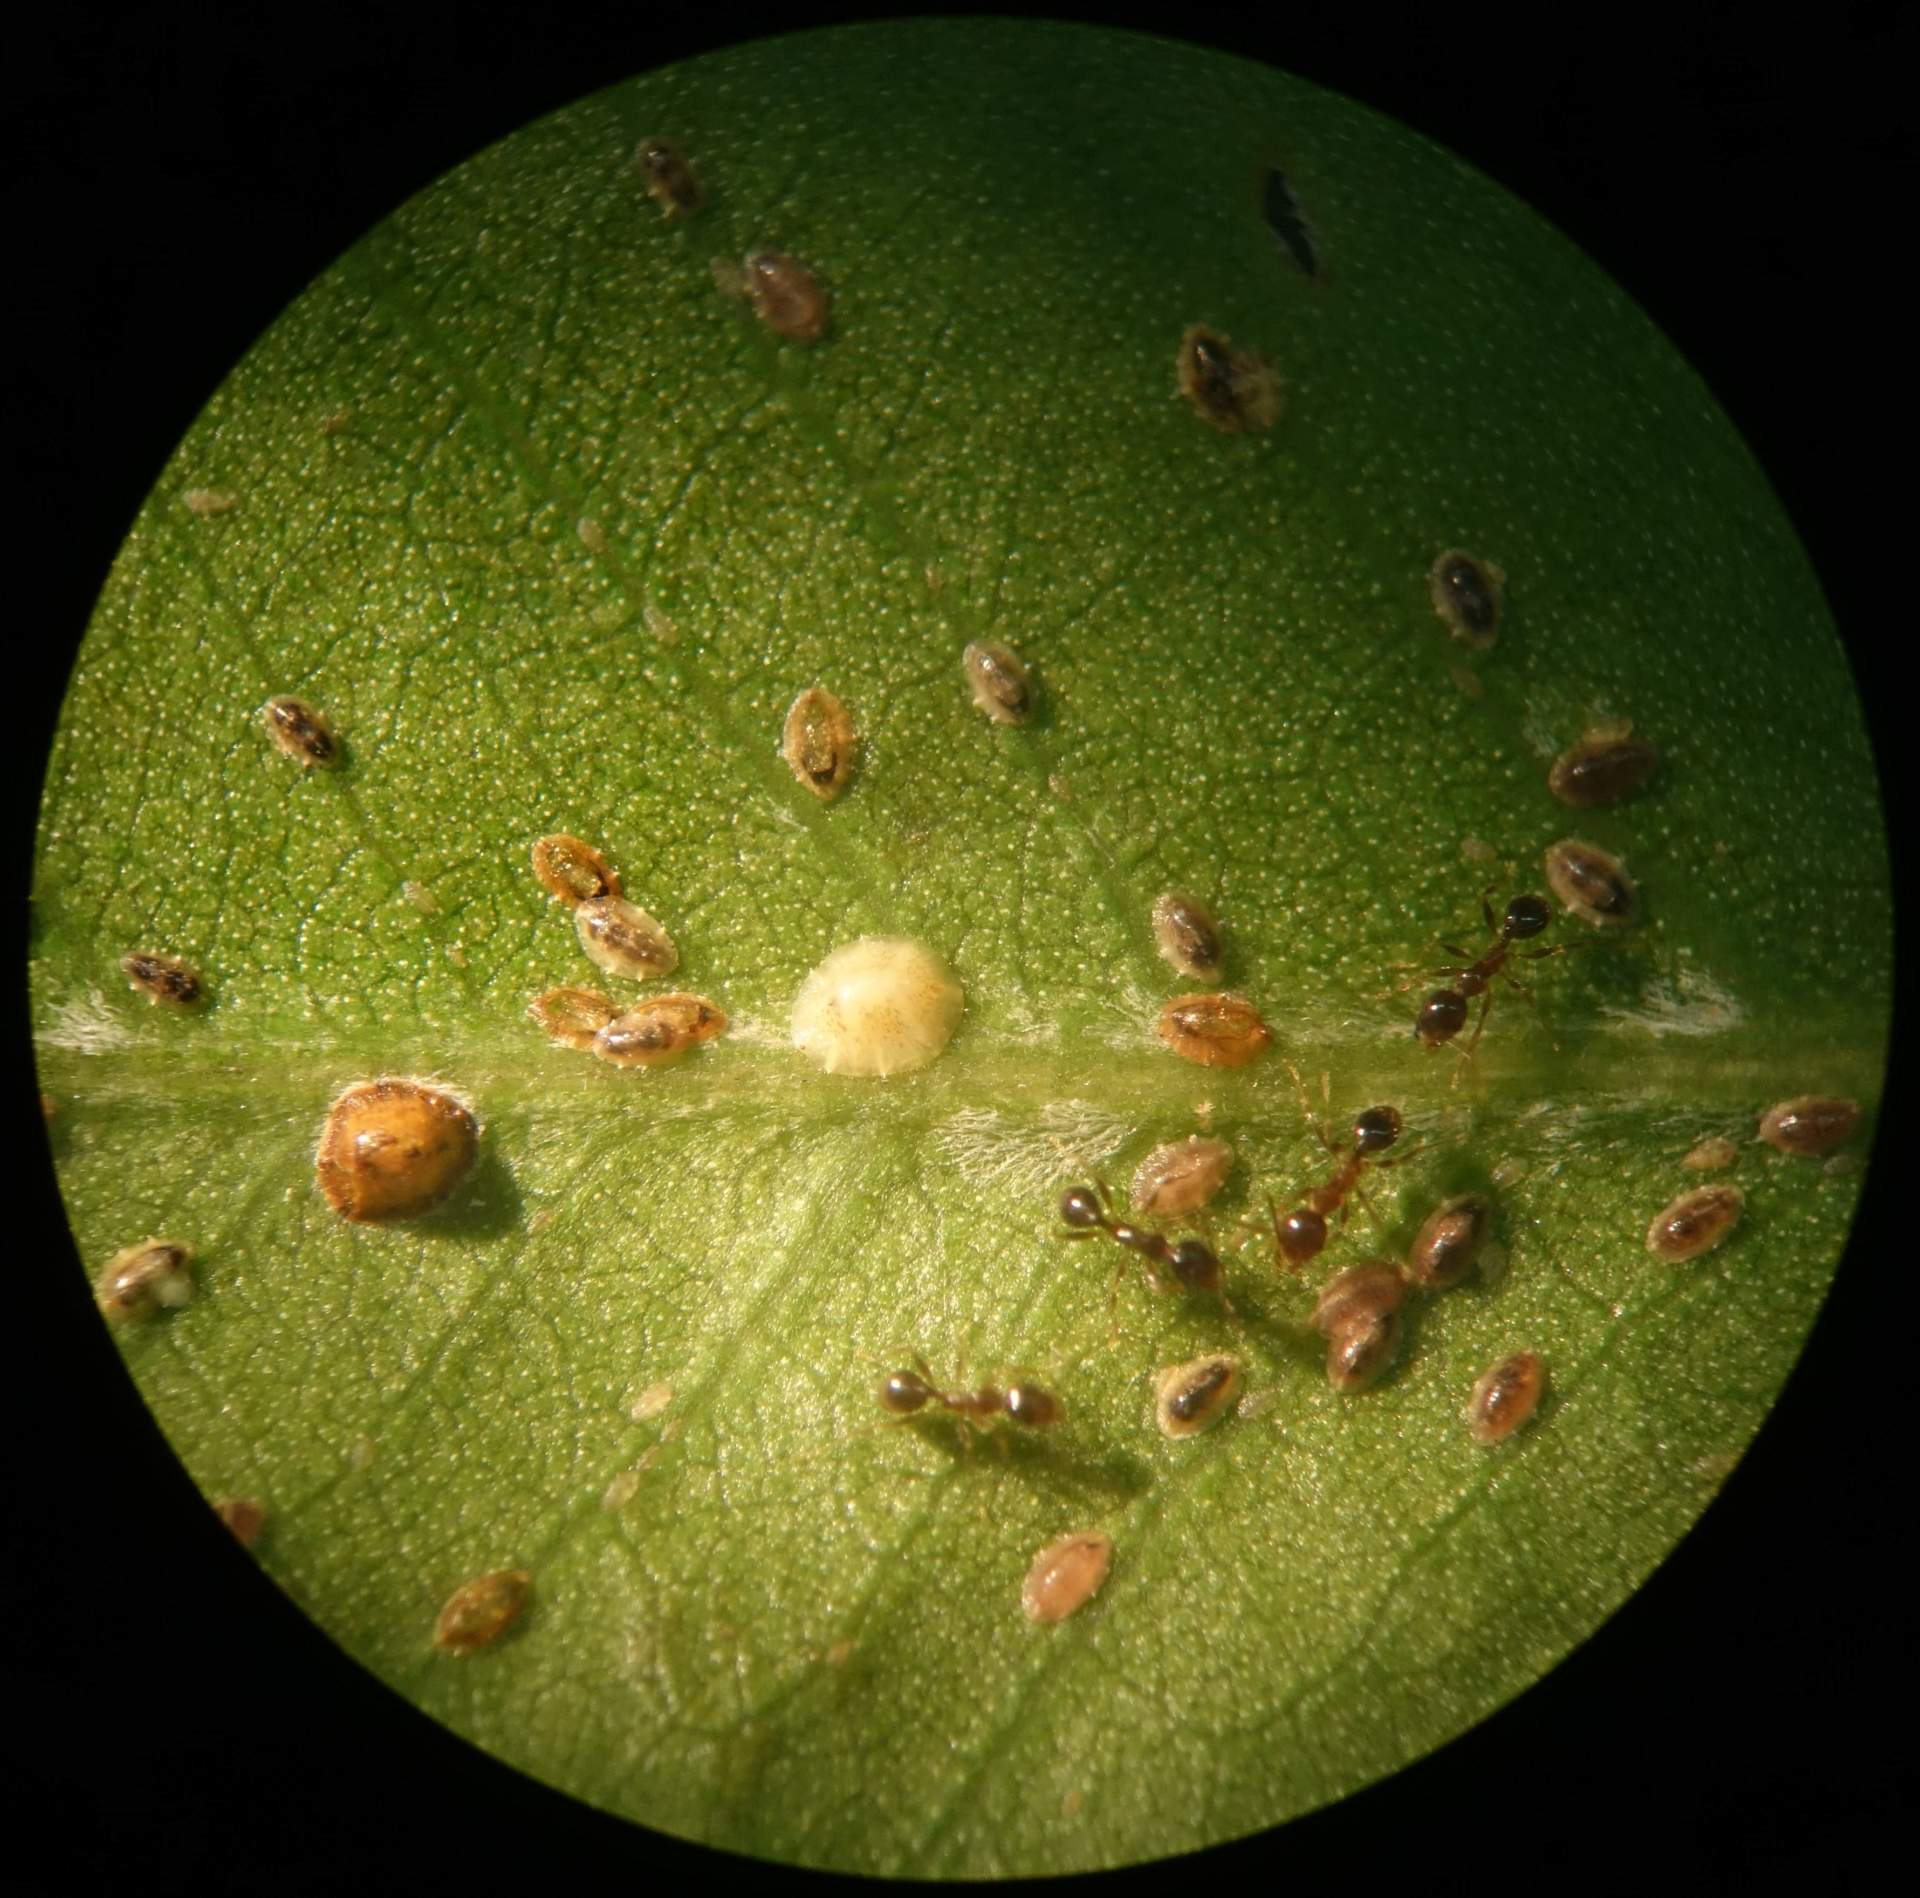 Ants and scale insects on a leaf